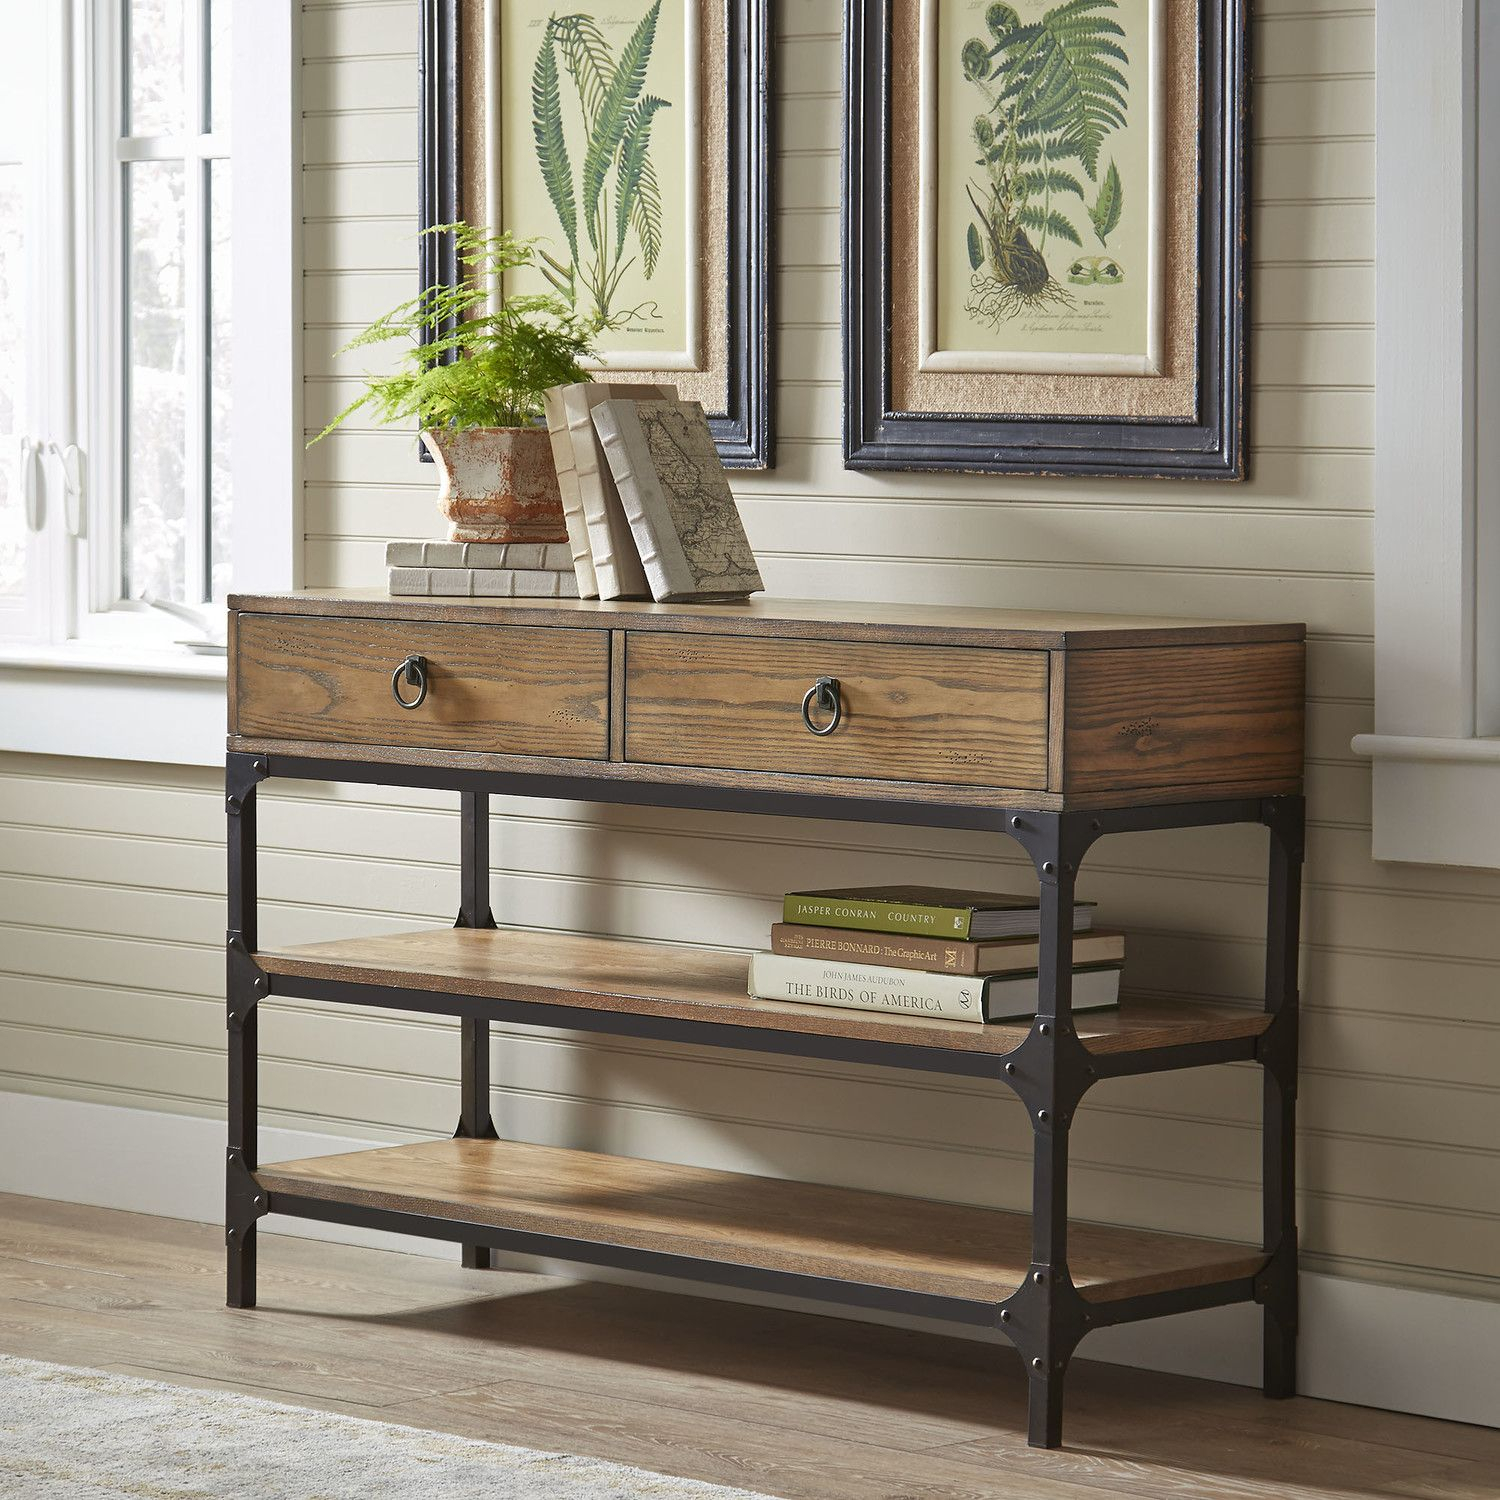 Tanner Console Table | Made With Ash Veneers And A Rustic Metal throughout Mix Patina Metal Frame Console Tables (Image 26 of 30)